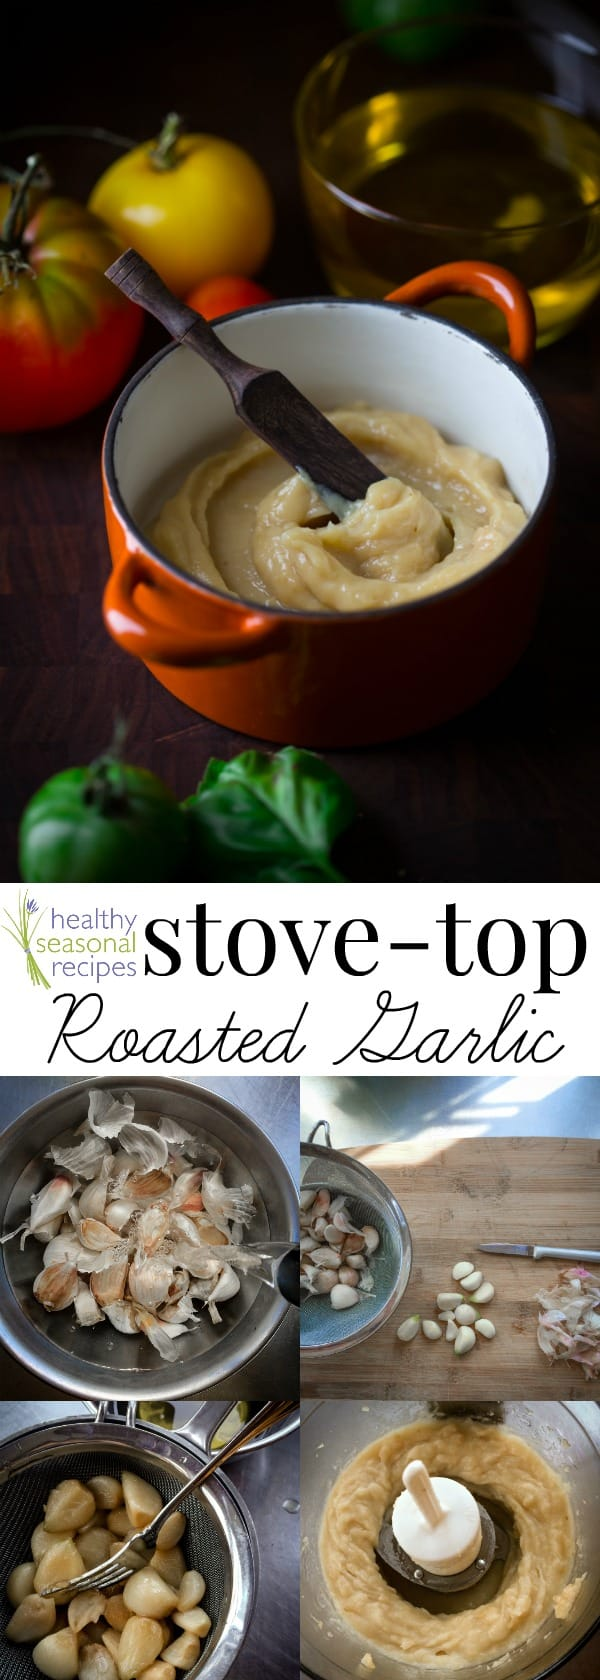 Stove-top roasted garlic puree and roasted garlic oil. A simple gluten-free, paleo and vegan ingredient to add flavor to seasonal vegetables. #garlic #roastedgarlic #glutenfree #paleo #vegan #stovetop #easy #healthy